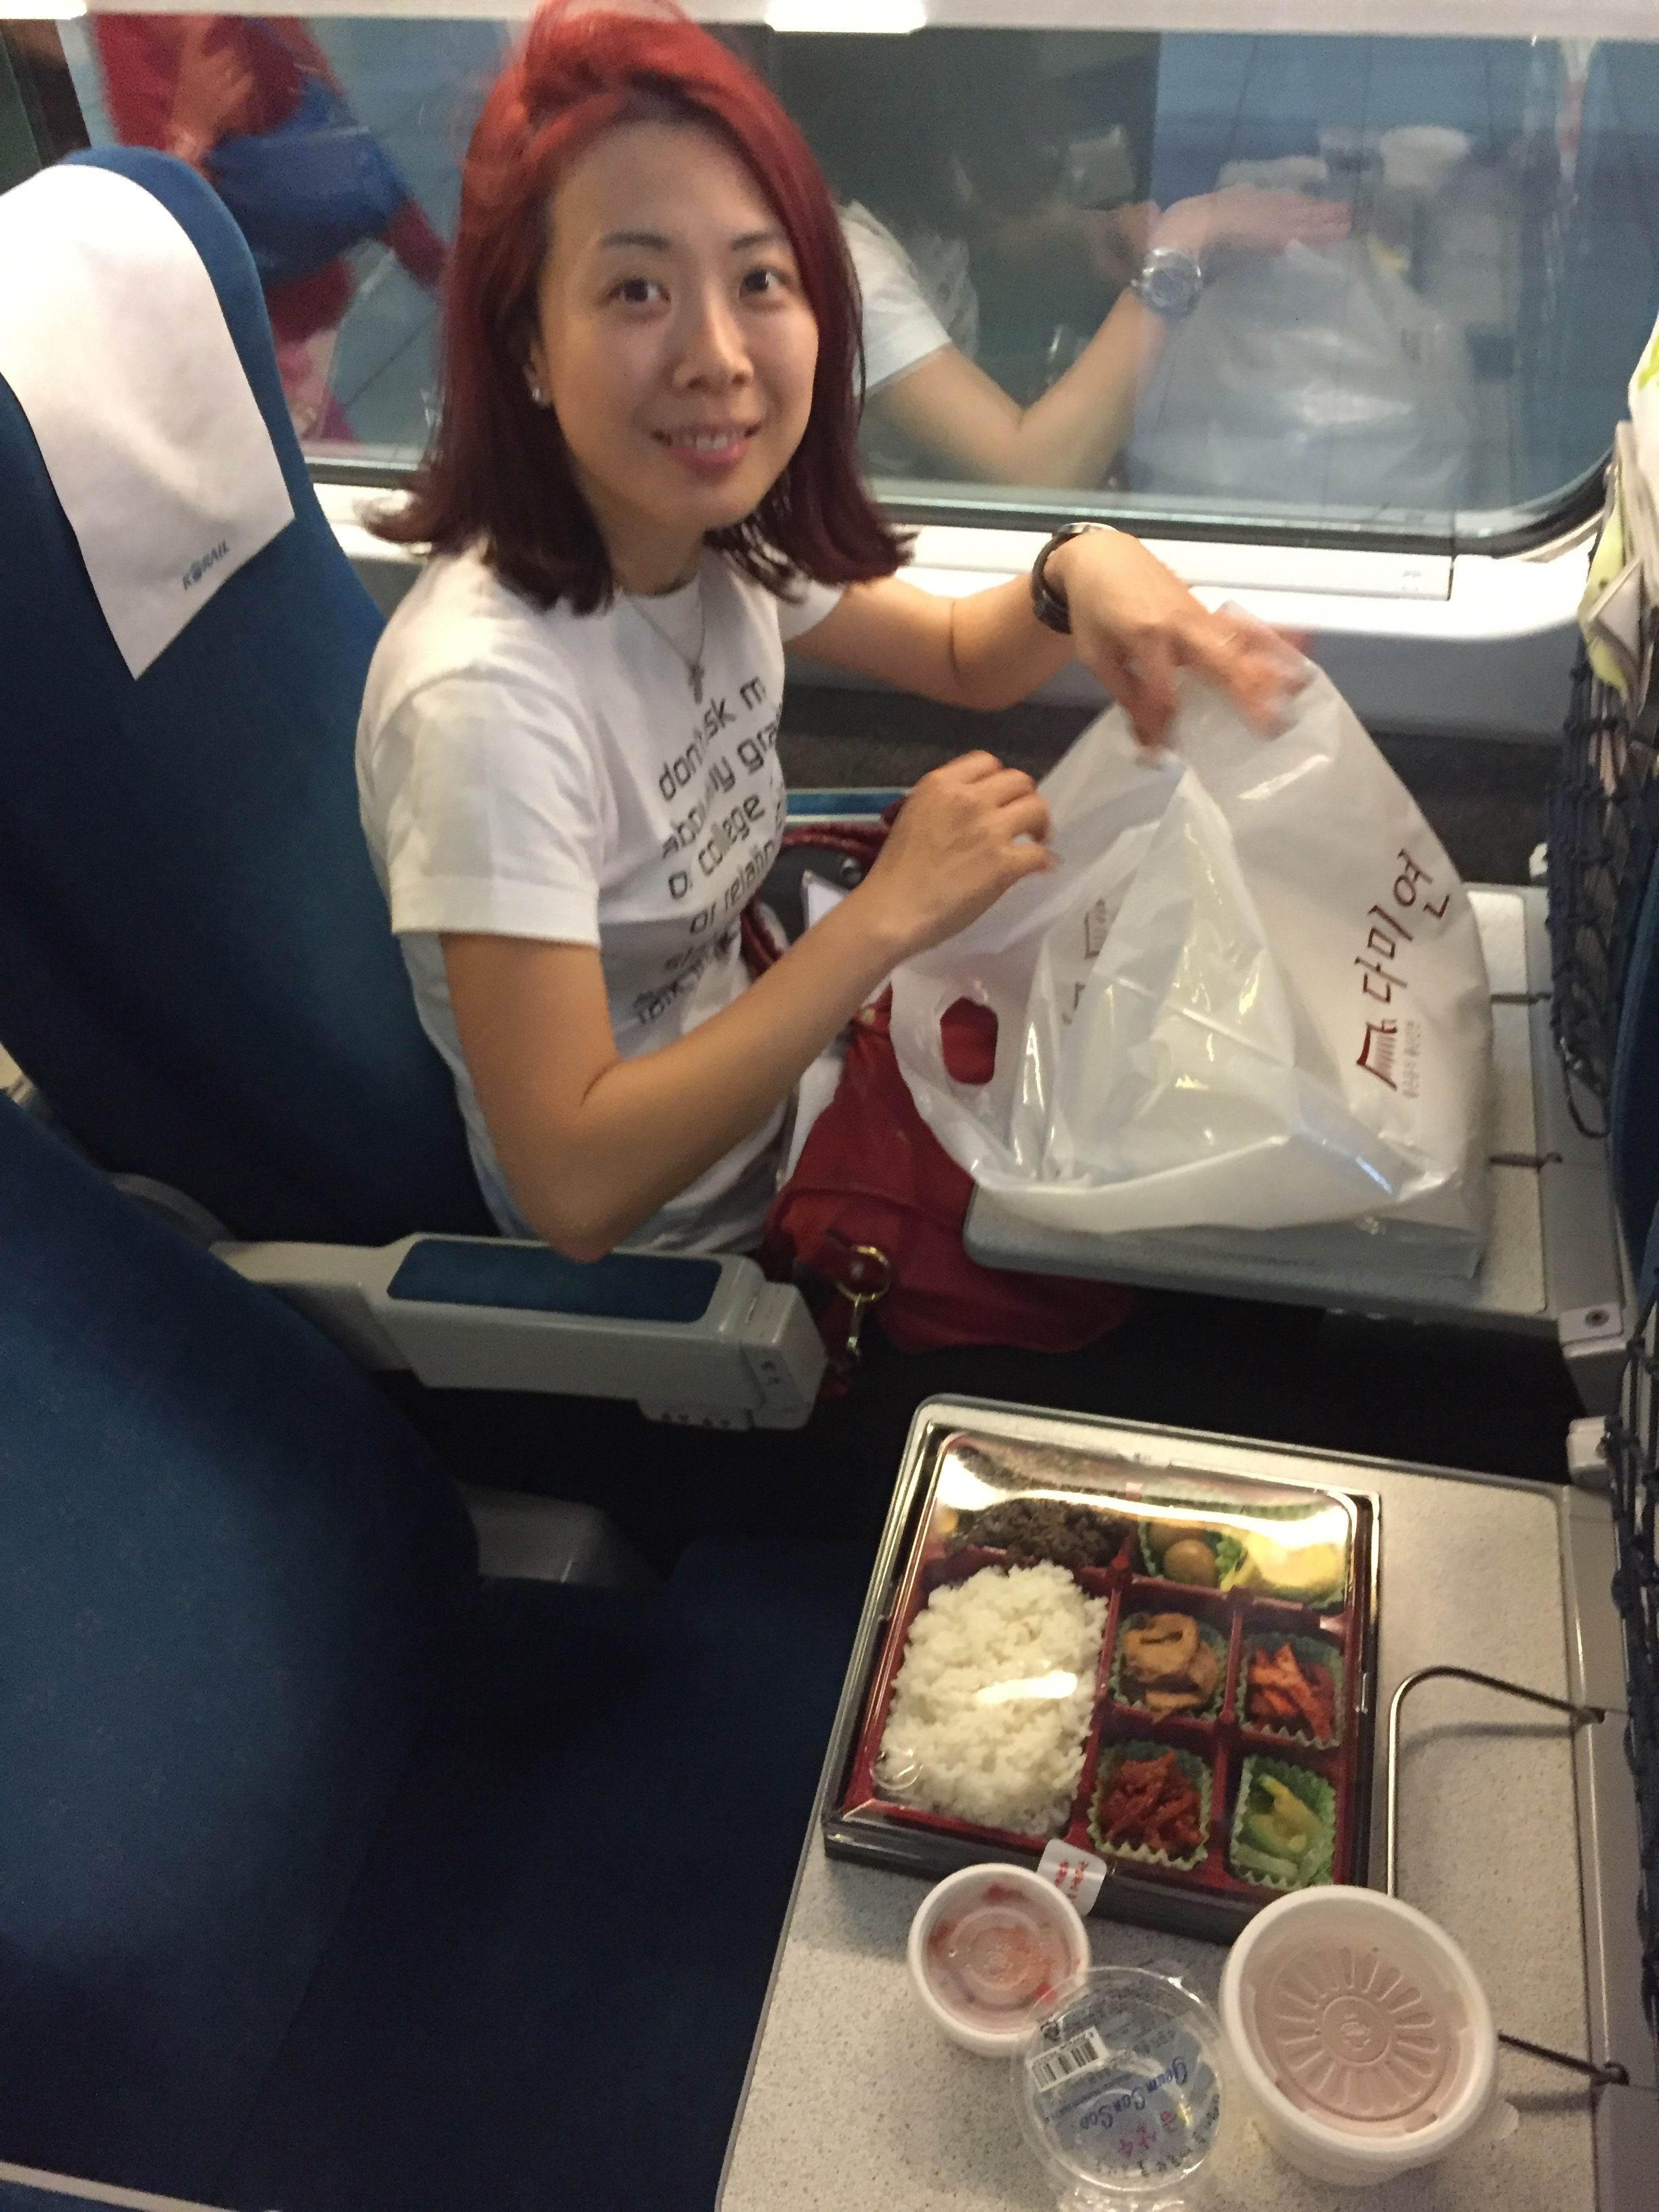 Brenda looking really happy with her bento dinner